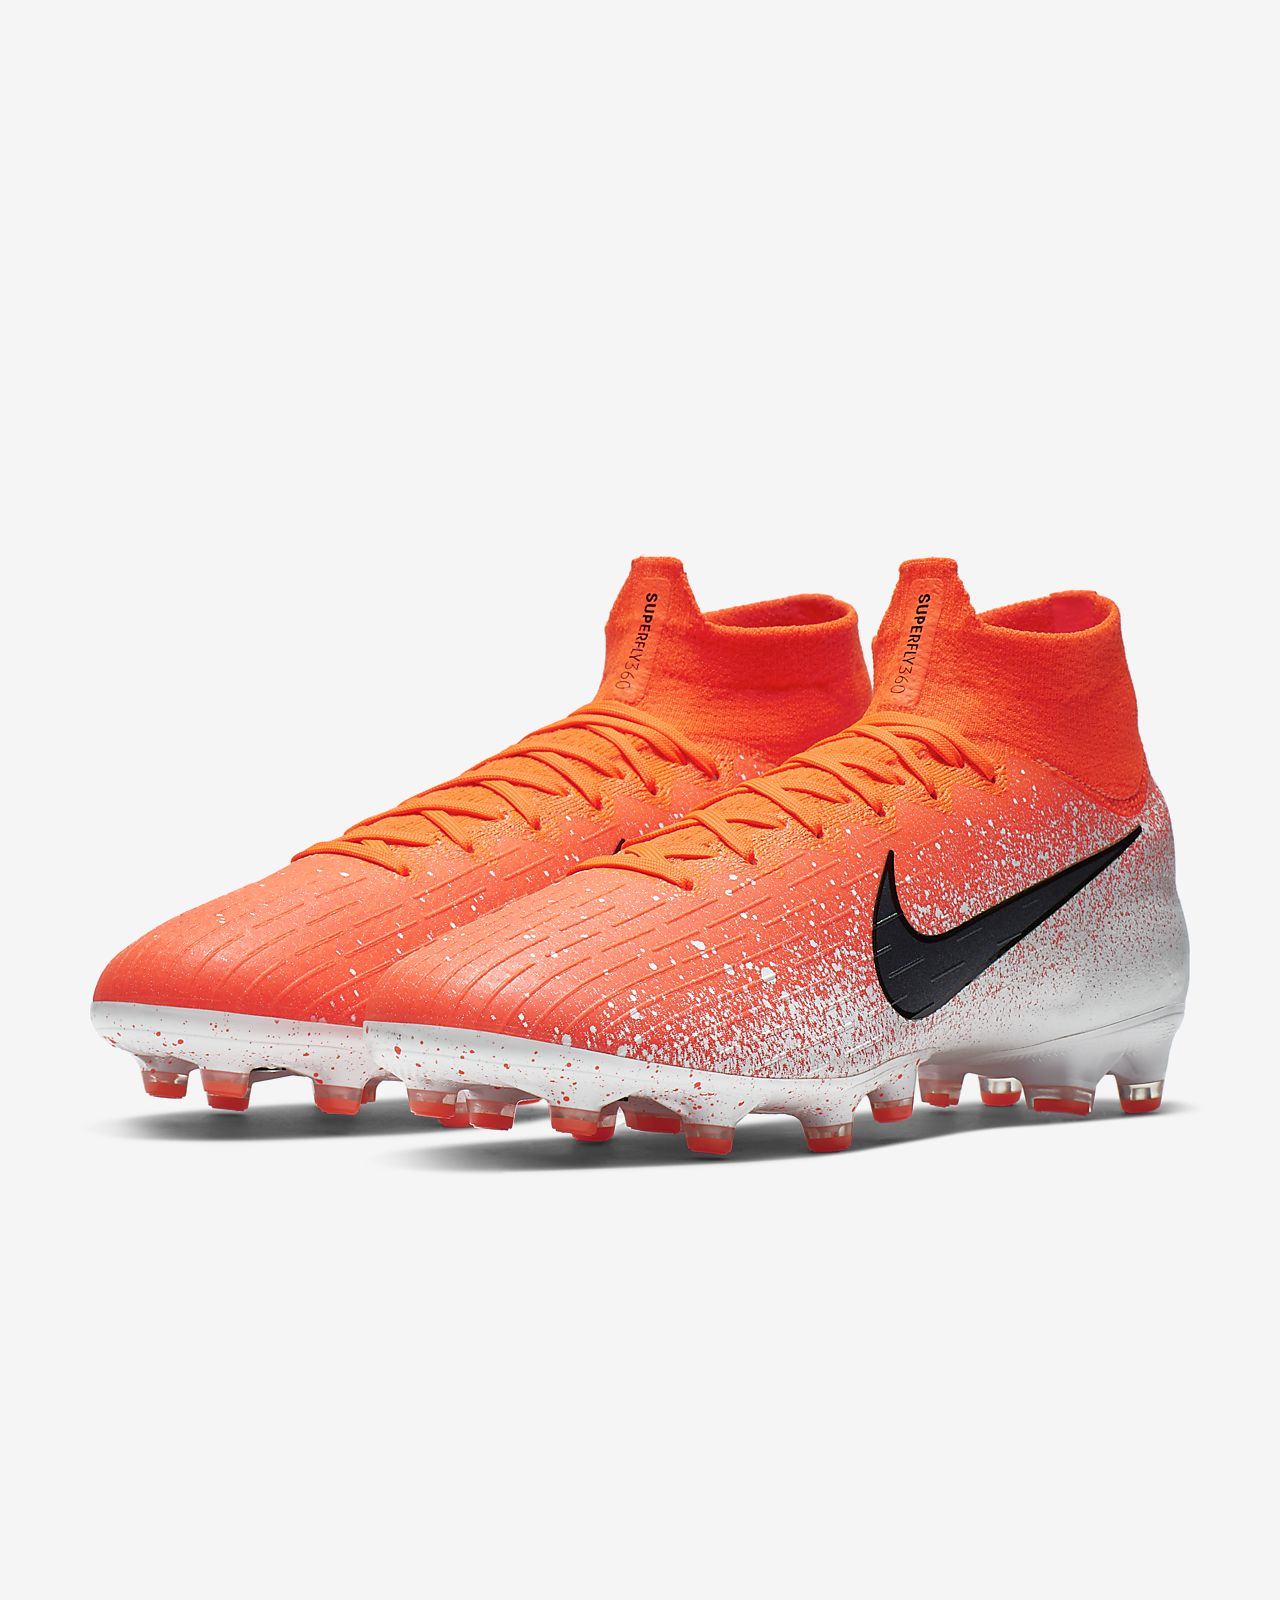 buy popular eceef 1180a ... Nike Mercurial Superfly 360 Elite AG-PRO fotballsko til kunstgress